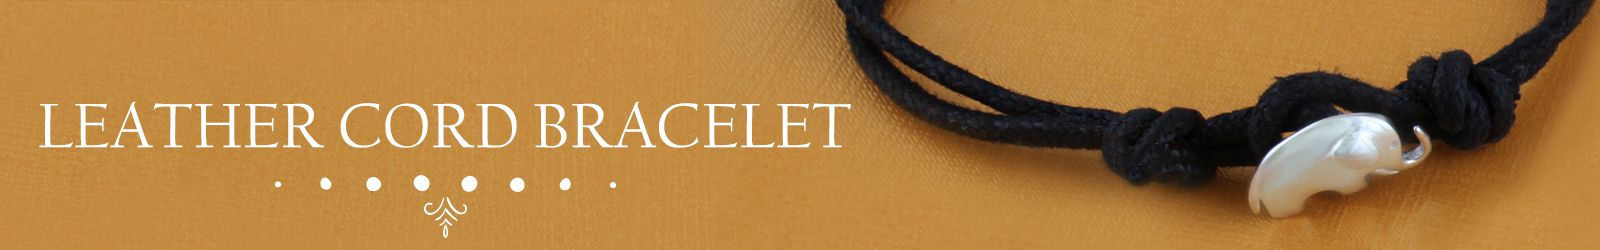 Online Leather And Cord Bracelet Manufacturer, Supplier in Jaipur